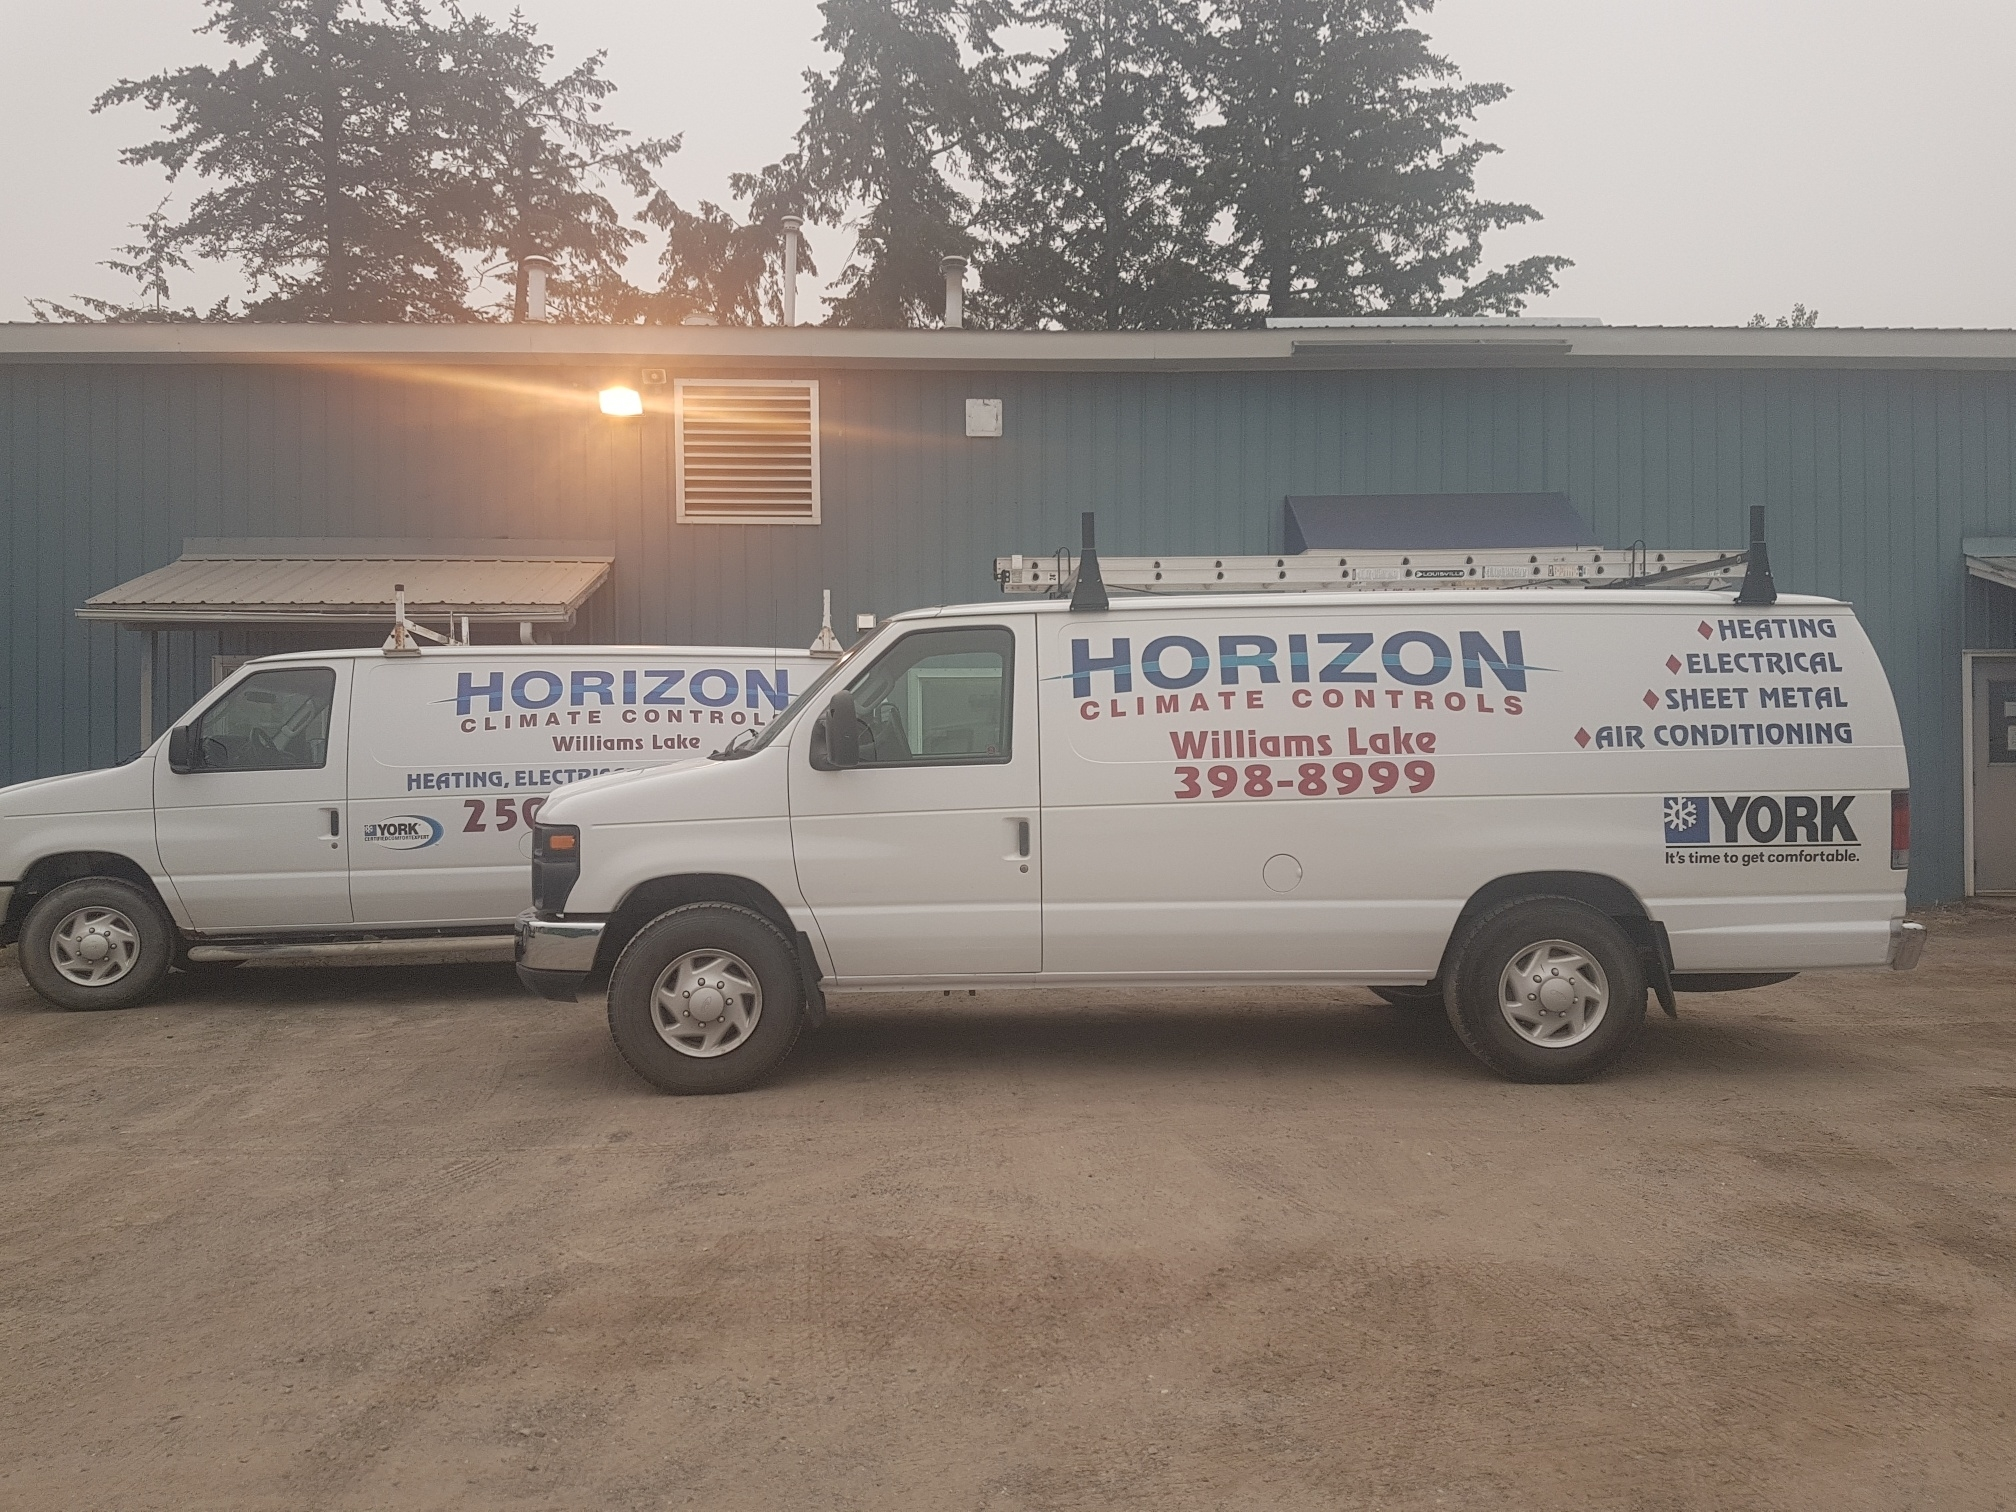 Horizon Climate Controls Ltd in Williams Lake: service vans